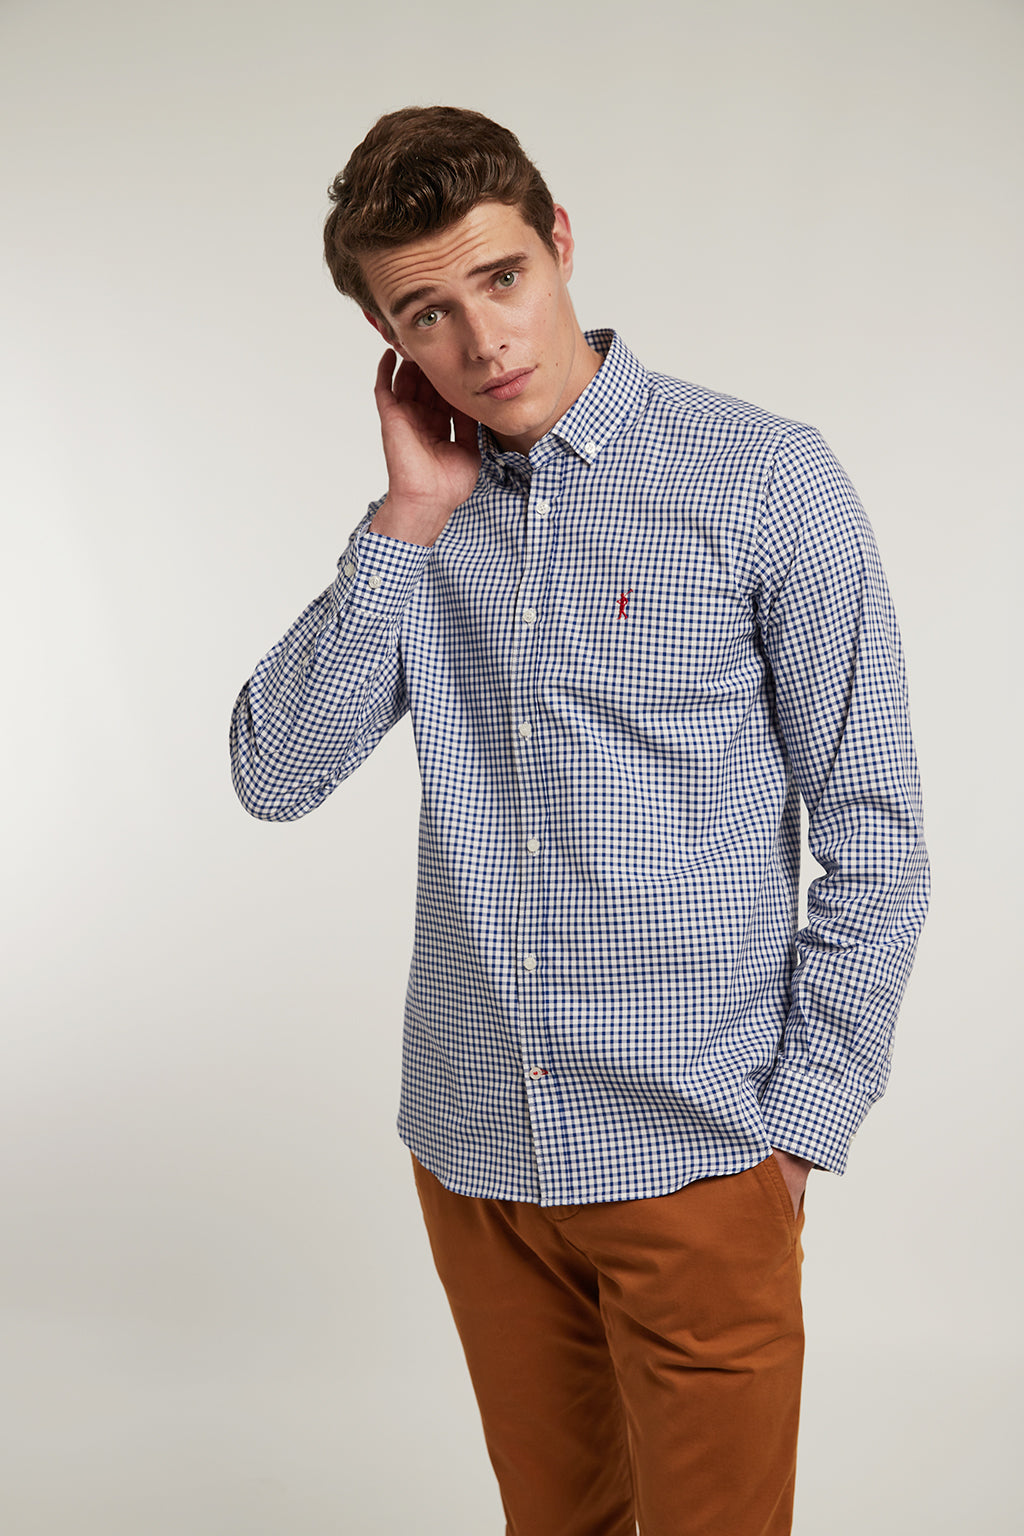 Navy blue custom fit checked shirt with white background